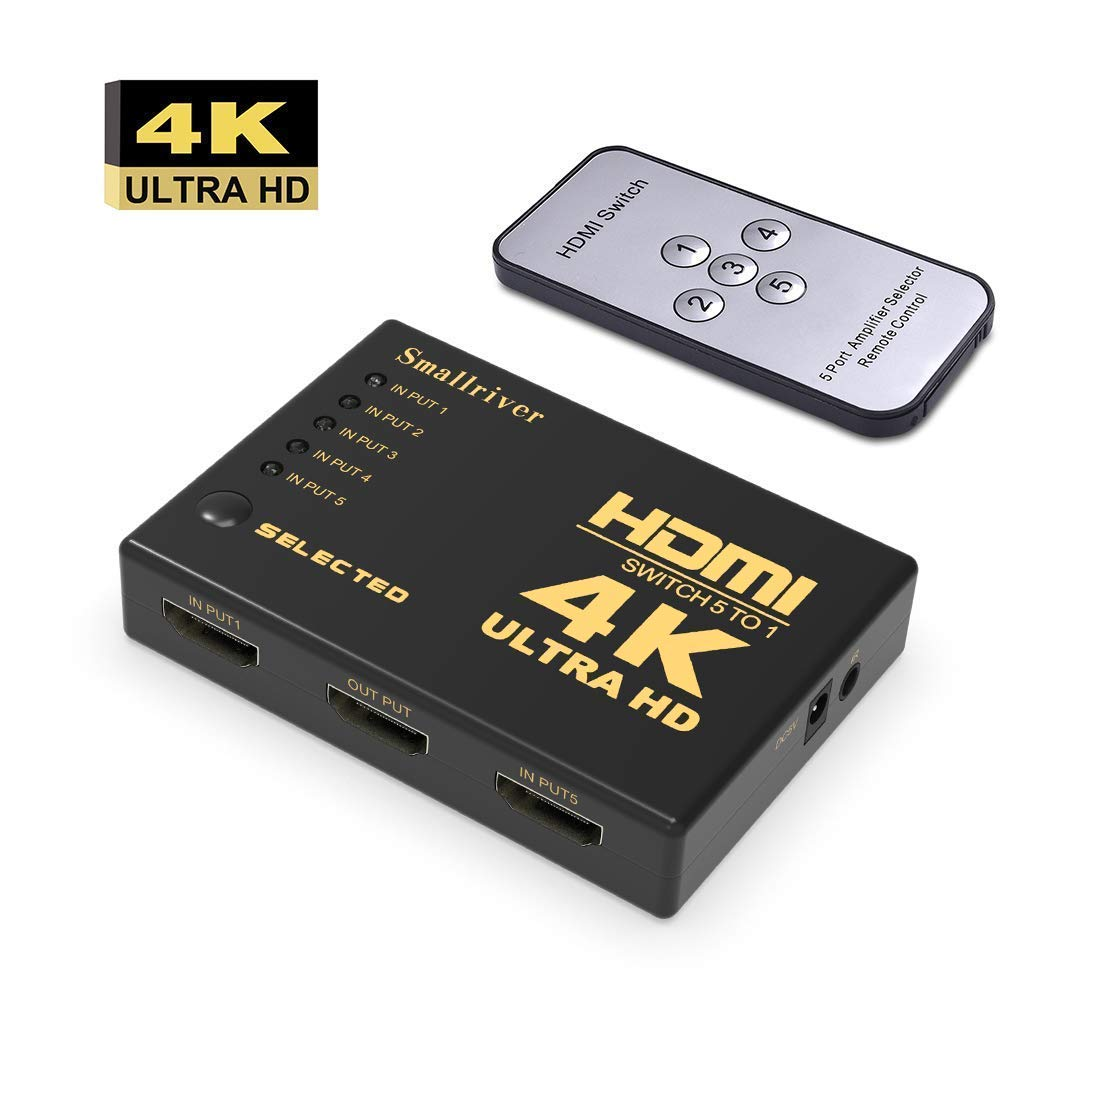 HDMI Switch Splitter,Smallriver Intelligent 5 Port HDMI Switch, Supports 4K, Full HD1080p, 3D Player with IR Remote (5 Port-Black)